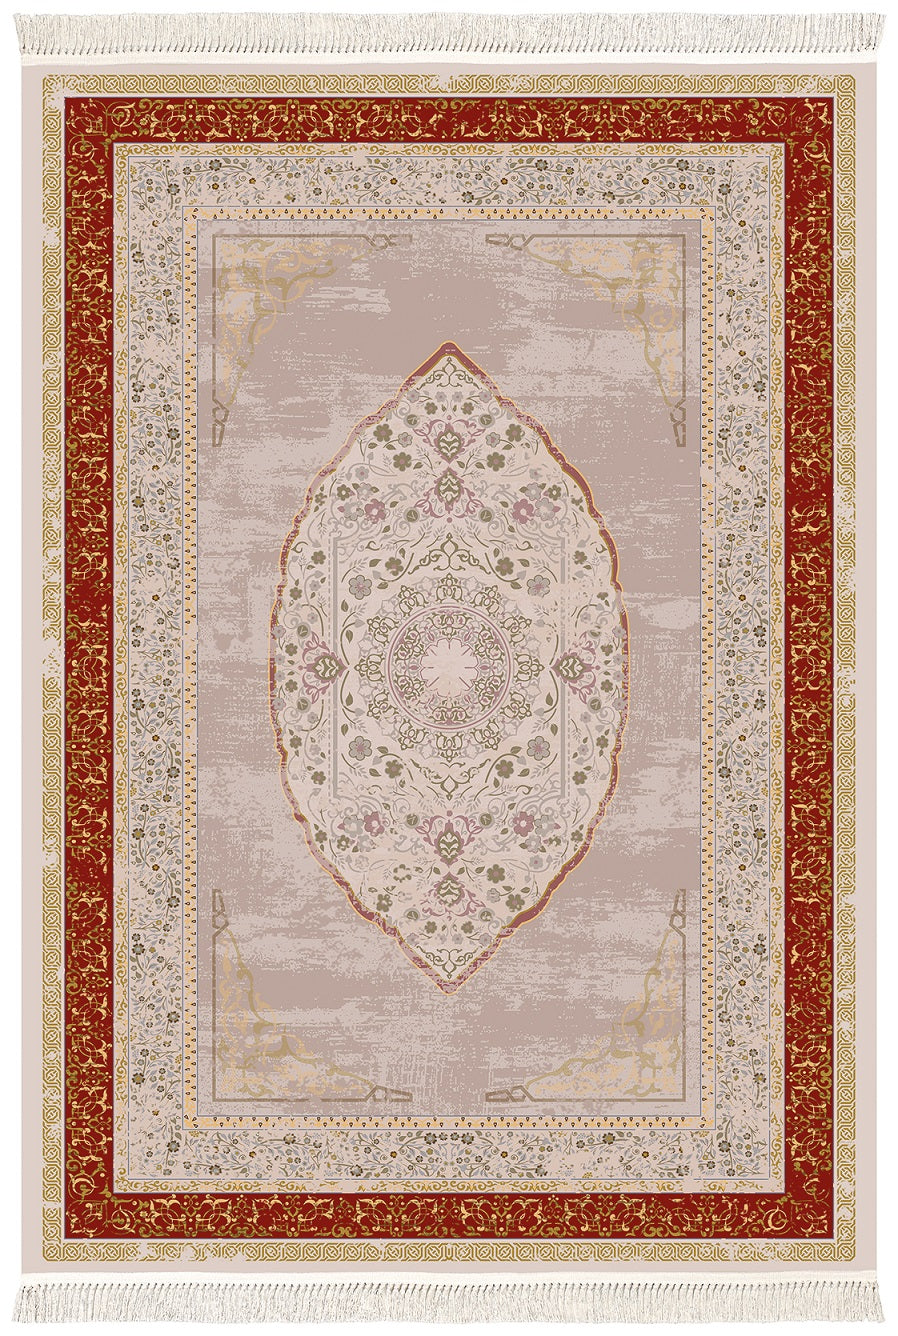 EDURA Digital Printed Luxury Rug.